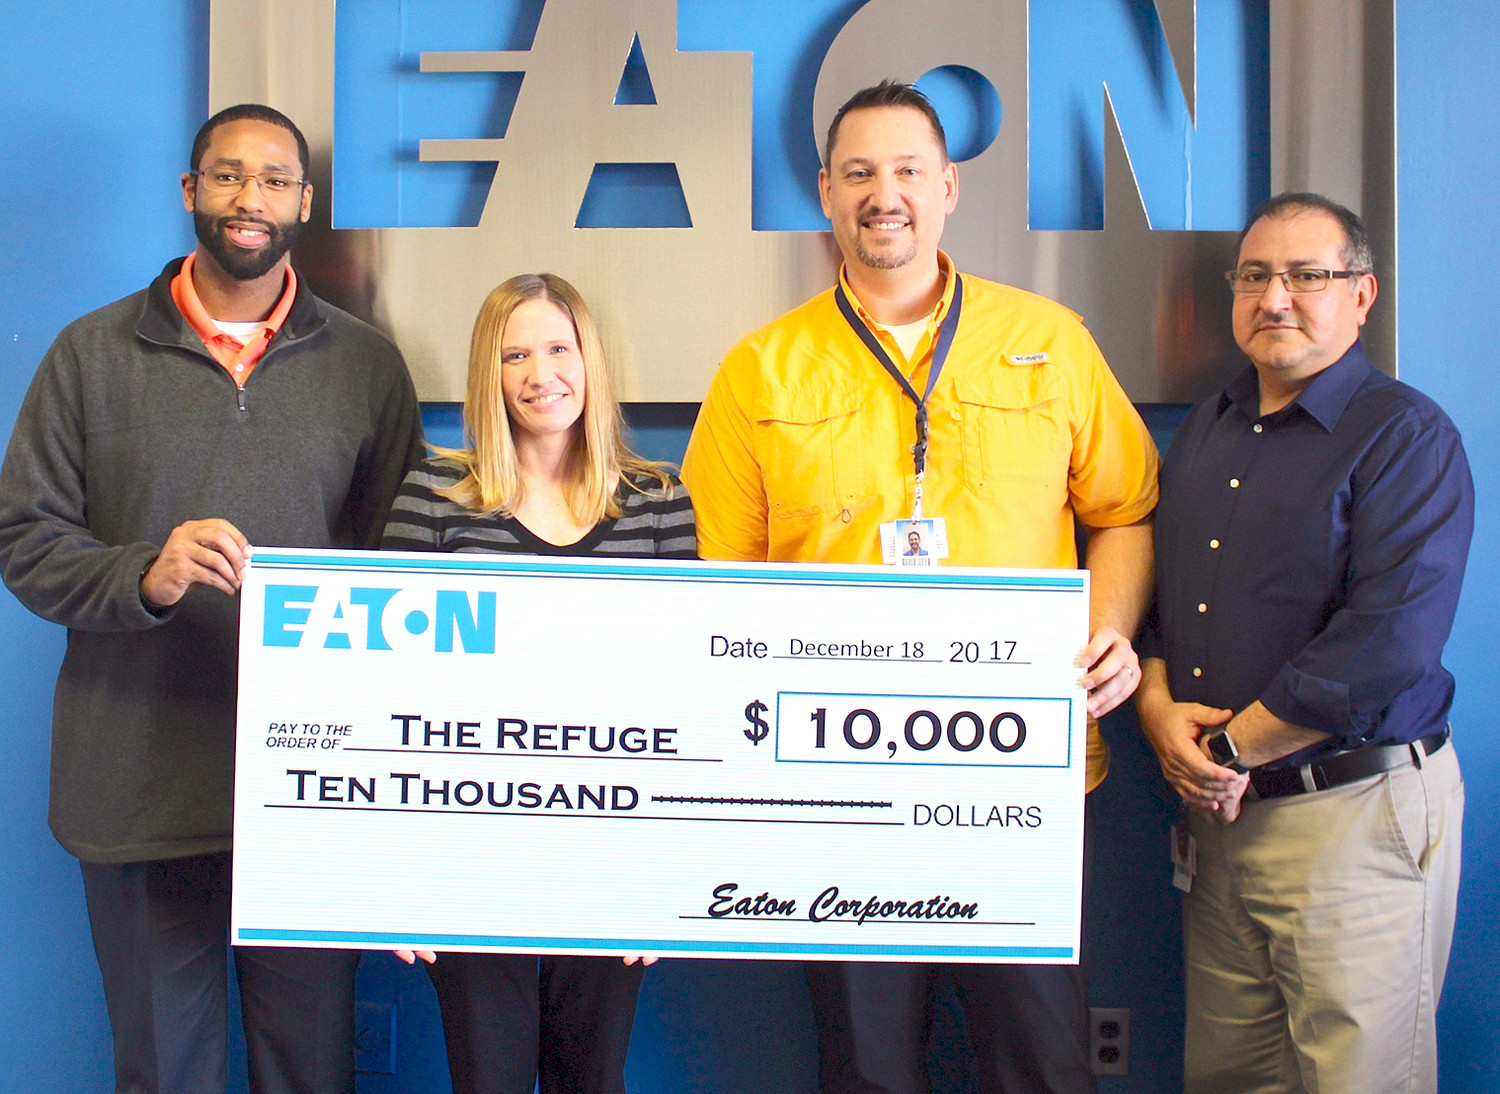 EATON CORPORATION recently presented a $10,000 grant to local nonprofit organization The Refuge. From left are Michael Patterson, human resources manager at Eaton; Kelli Kyle, chief operations officer at The Refuge; Quincey Bentley, senior materials planner at Eaton; and Cesar Escarcega, plant manager at Eaton.